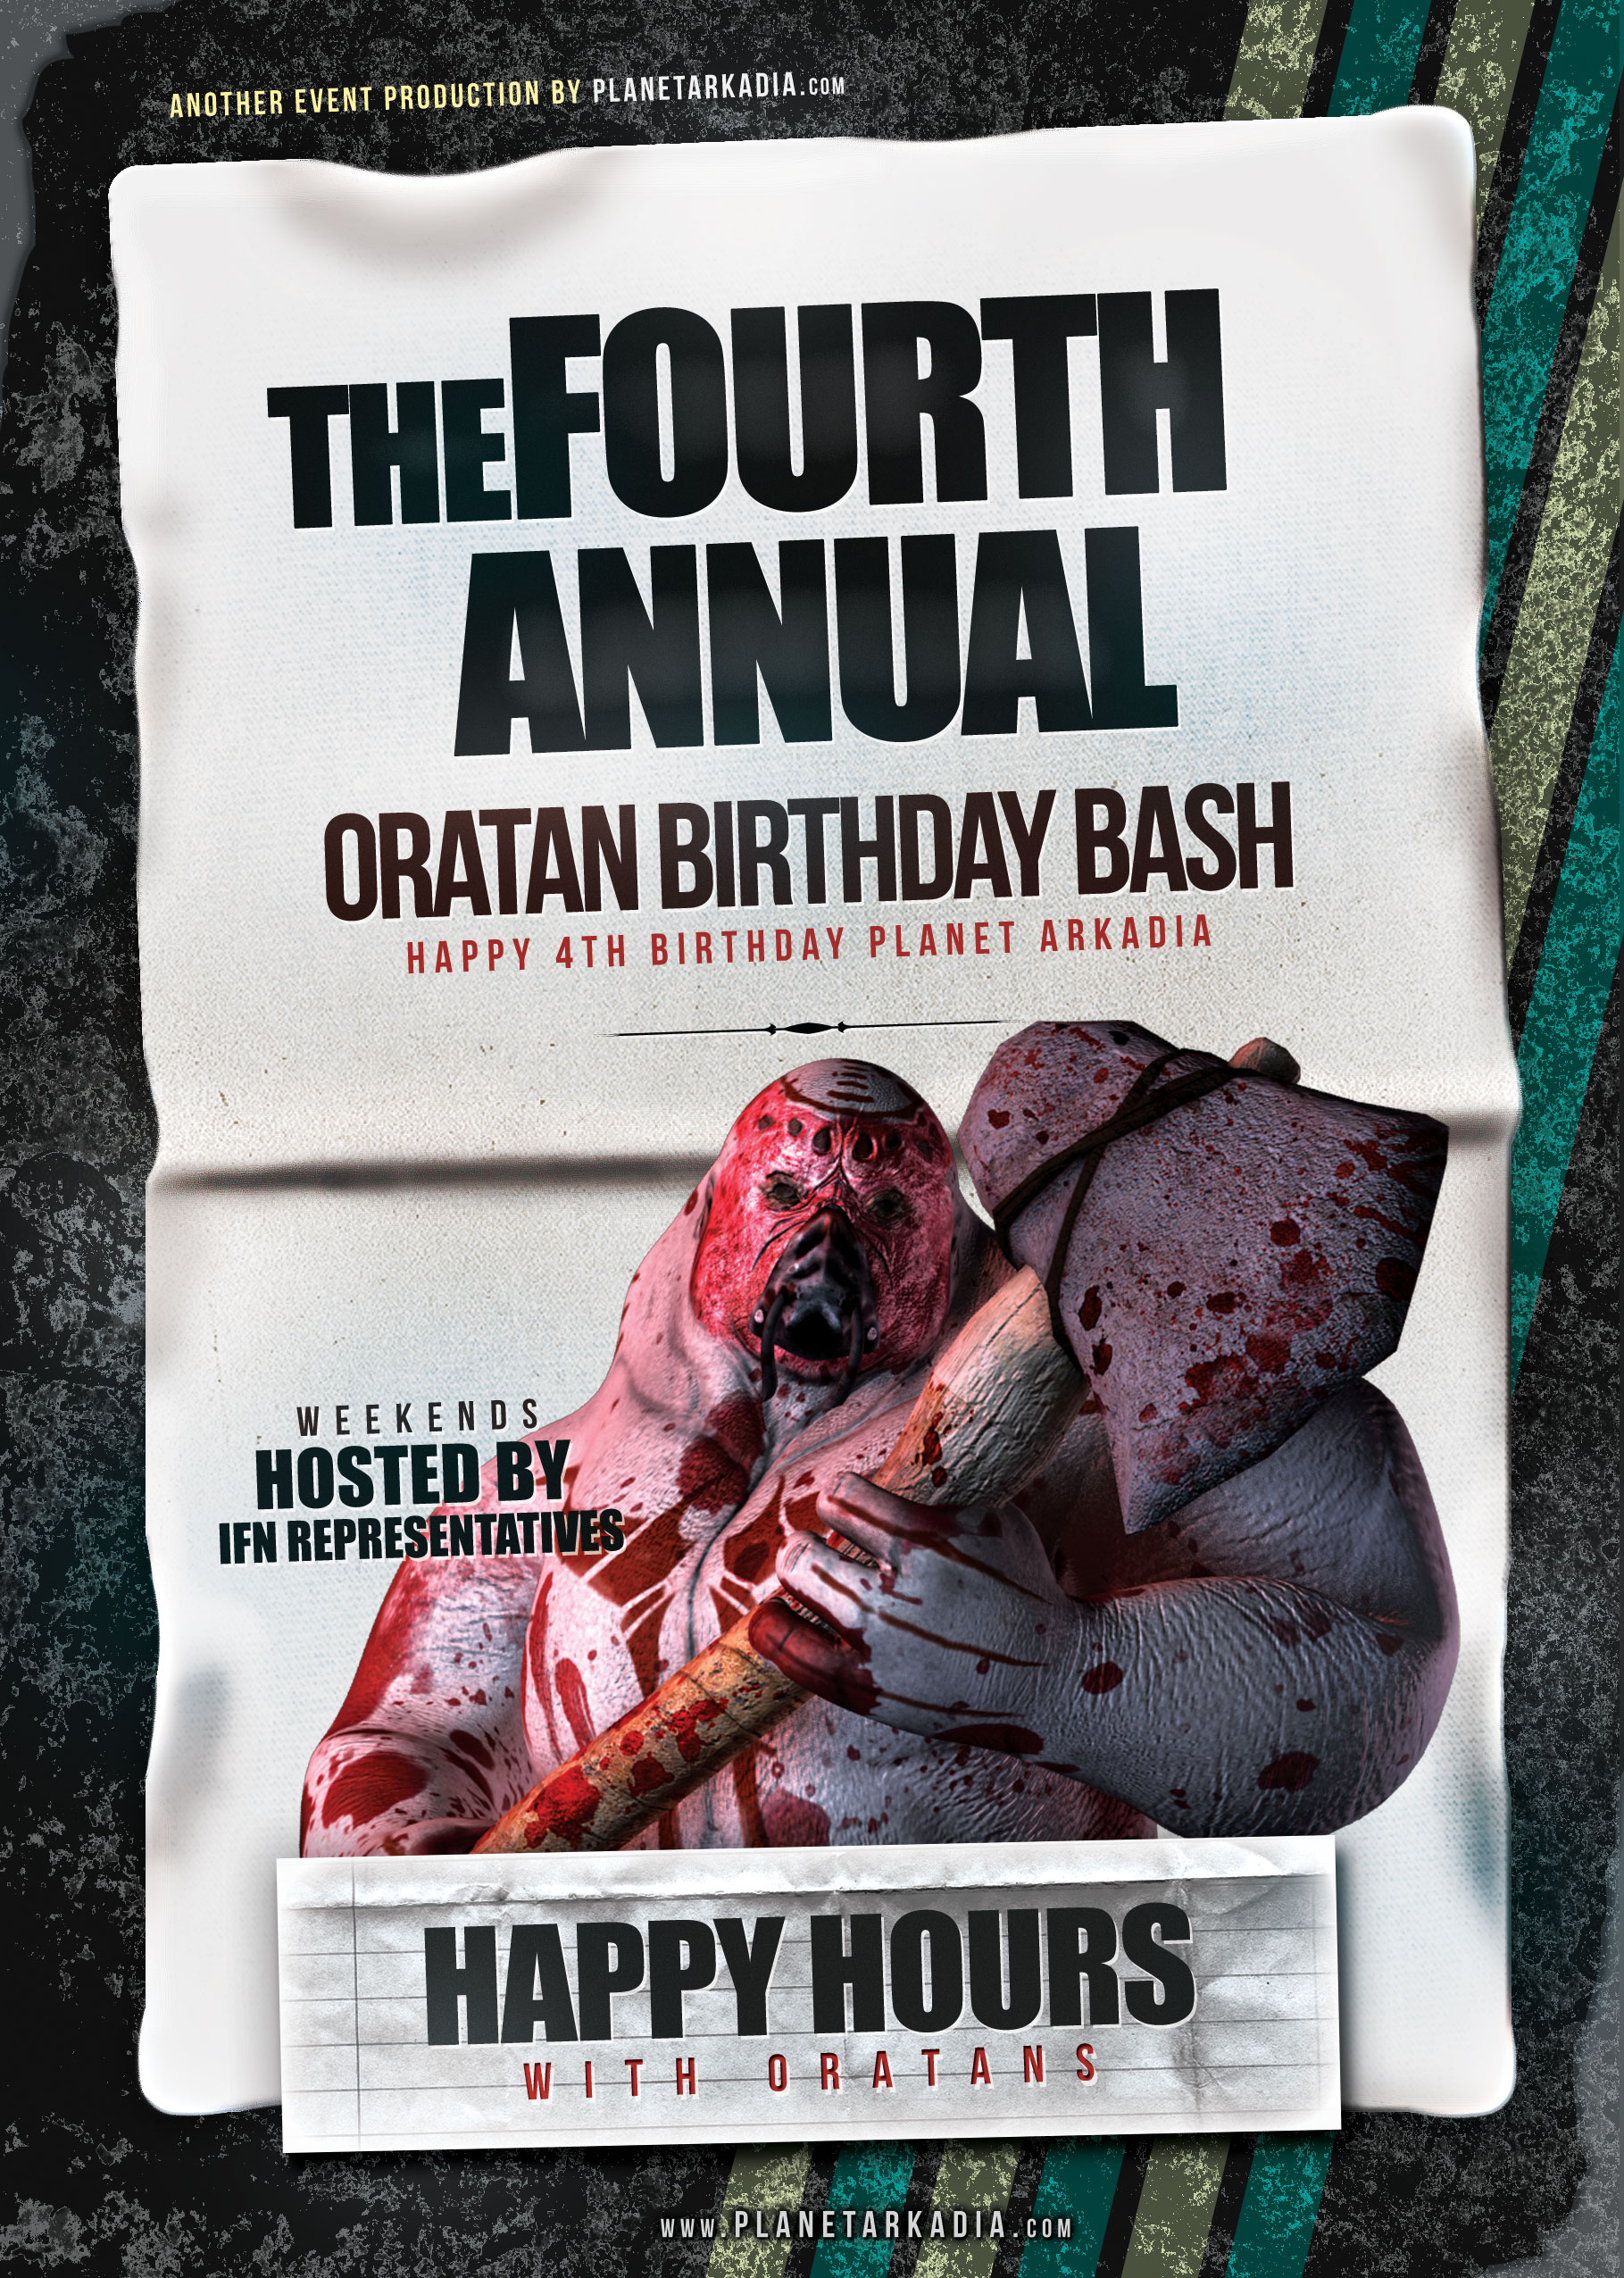 oratanbirthdaybash.jpg